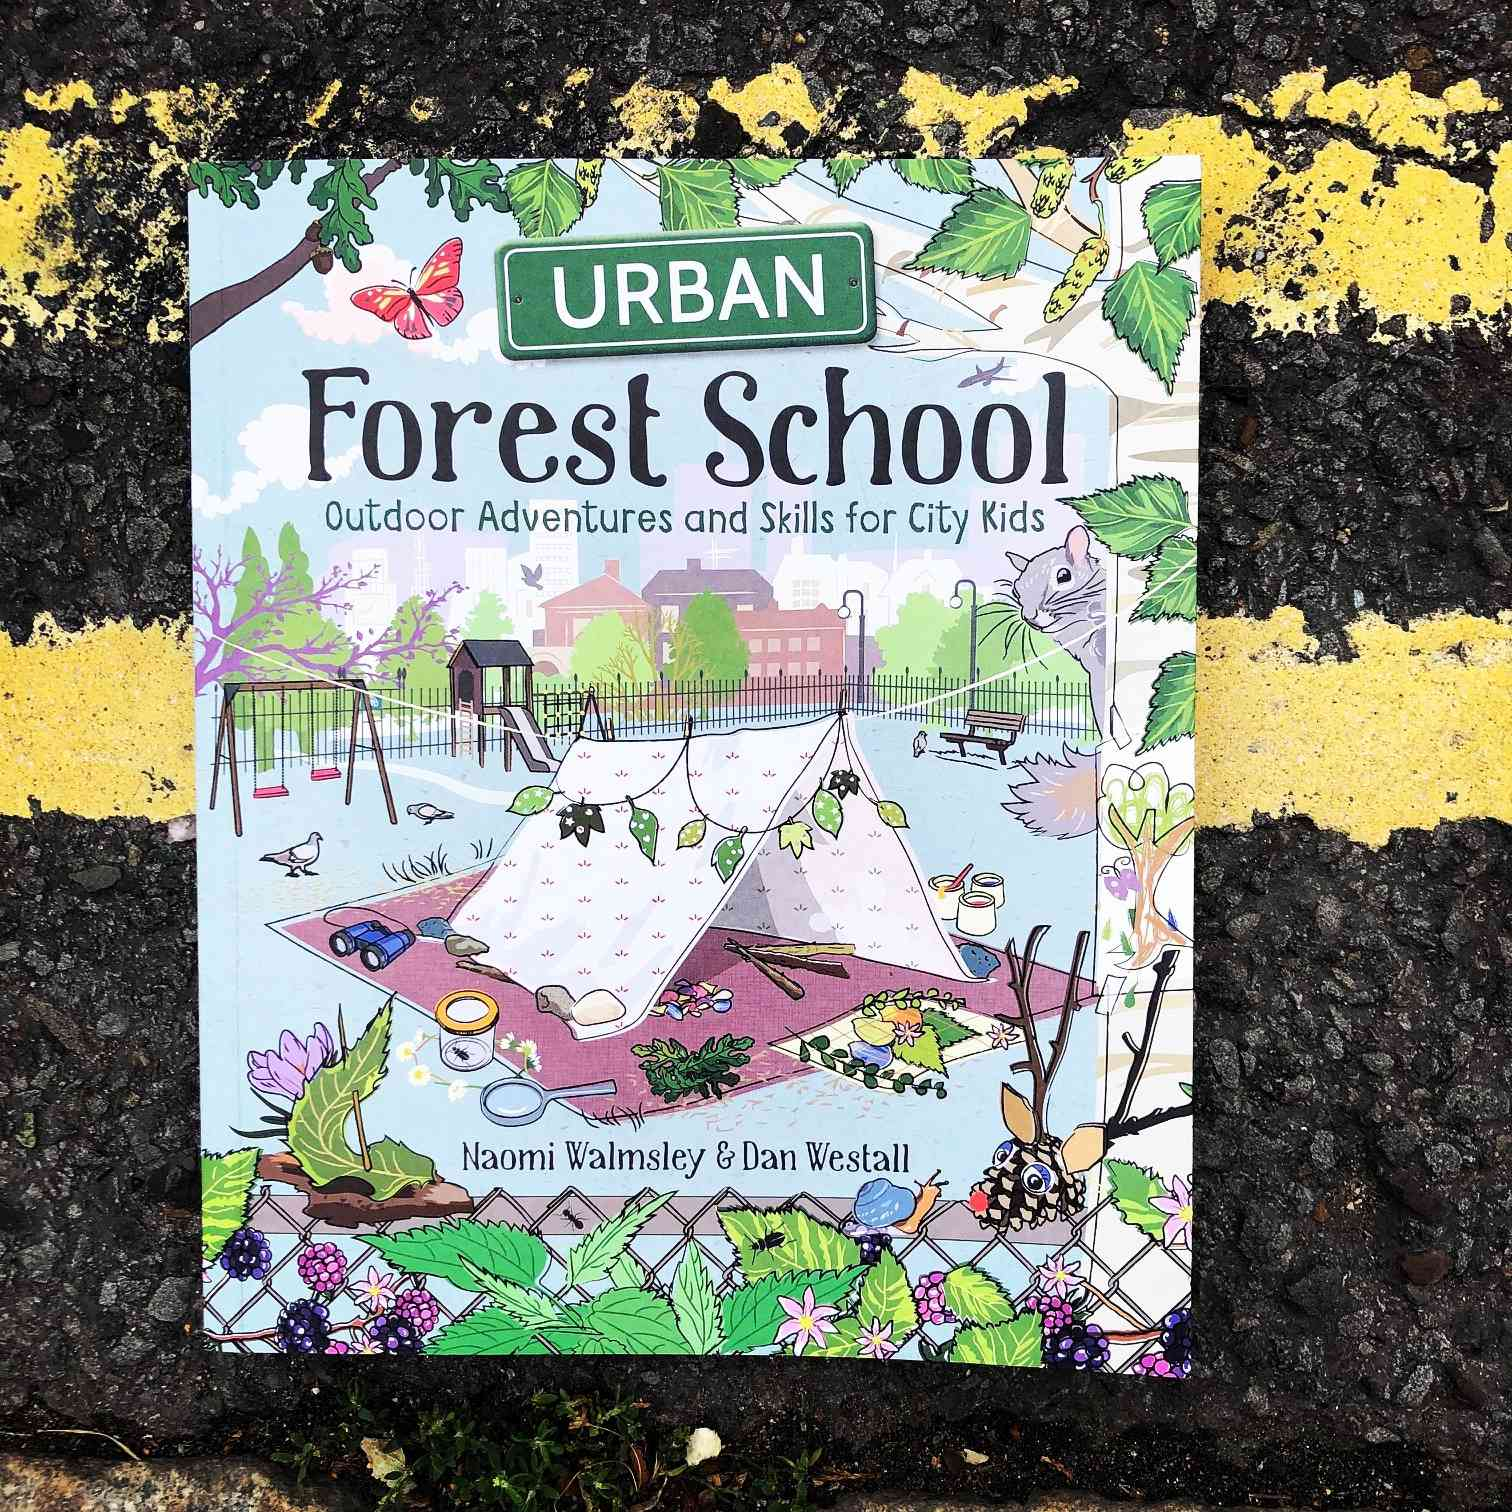 Urban Forest School book cover